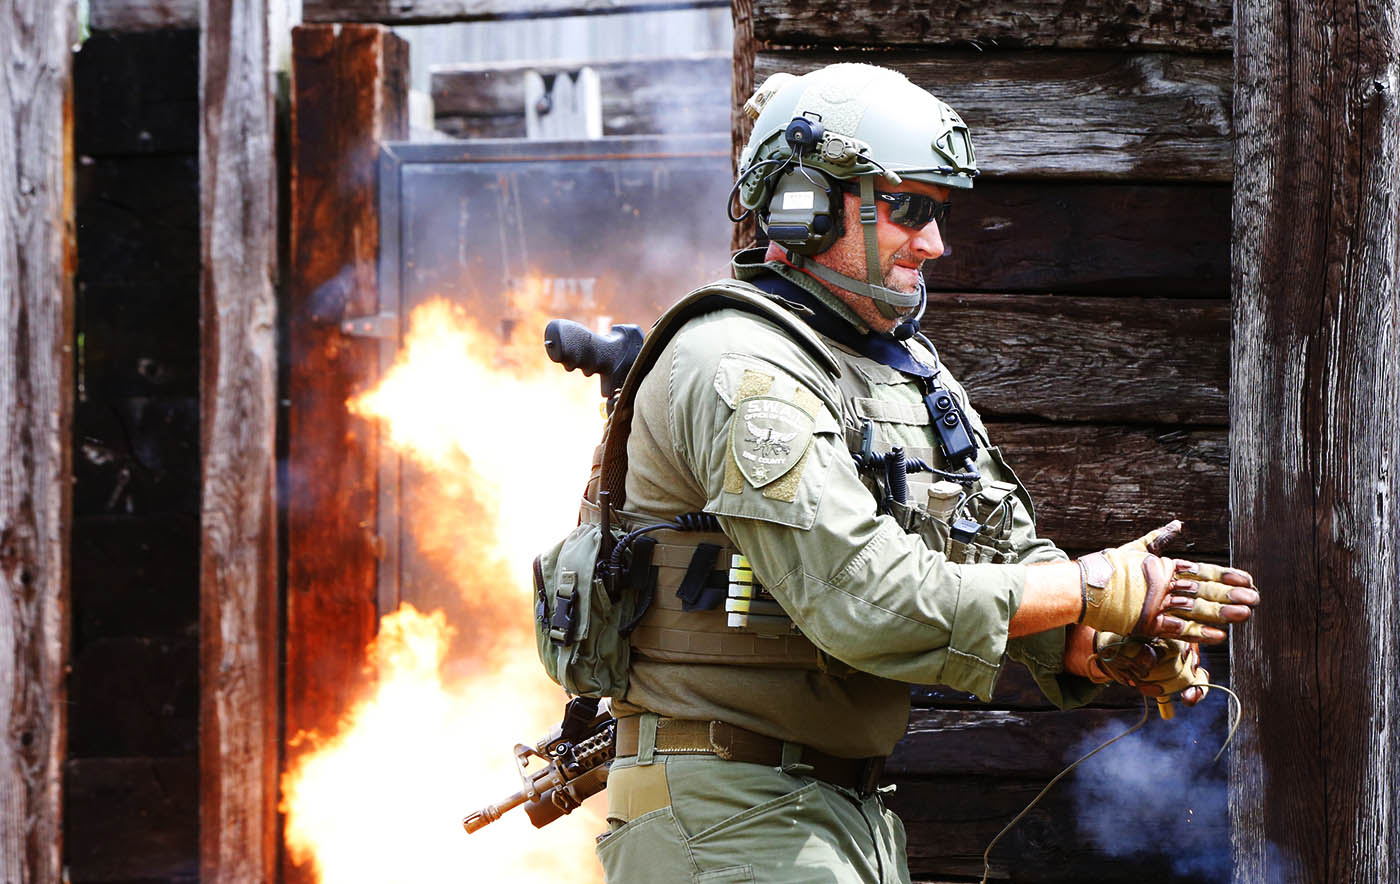 Pictures, Matt Noecker, SWAT team squad leader initiates a explosive charge during monthly Erie County Sheriff SWAT training at the Erie County Sheriff's Department Tactical Range in Alden,NY on Thursday, July 14, 2016. (Harry Scull Jr./Buffalo News)